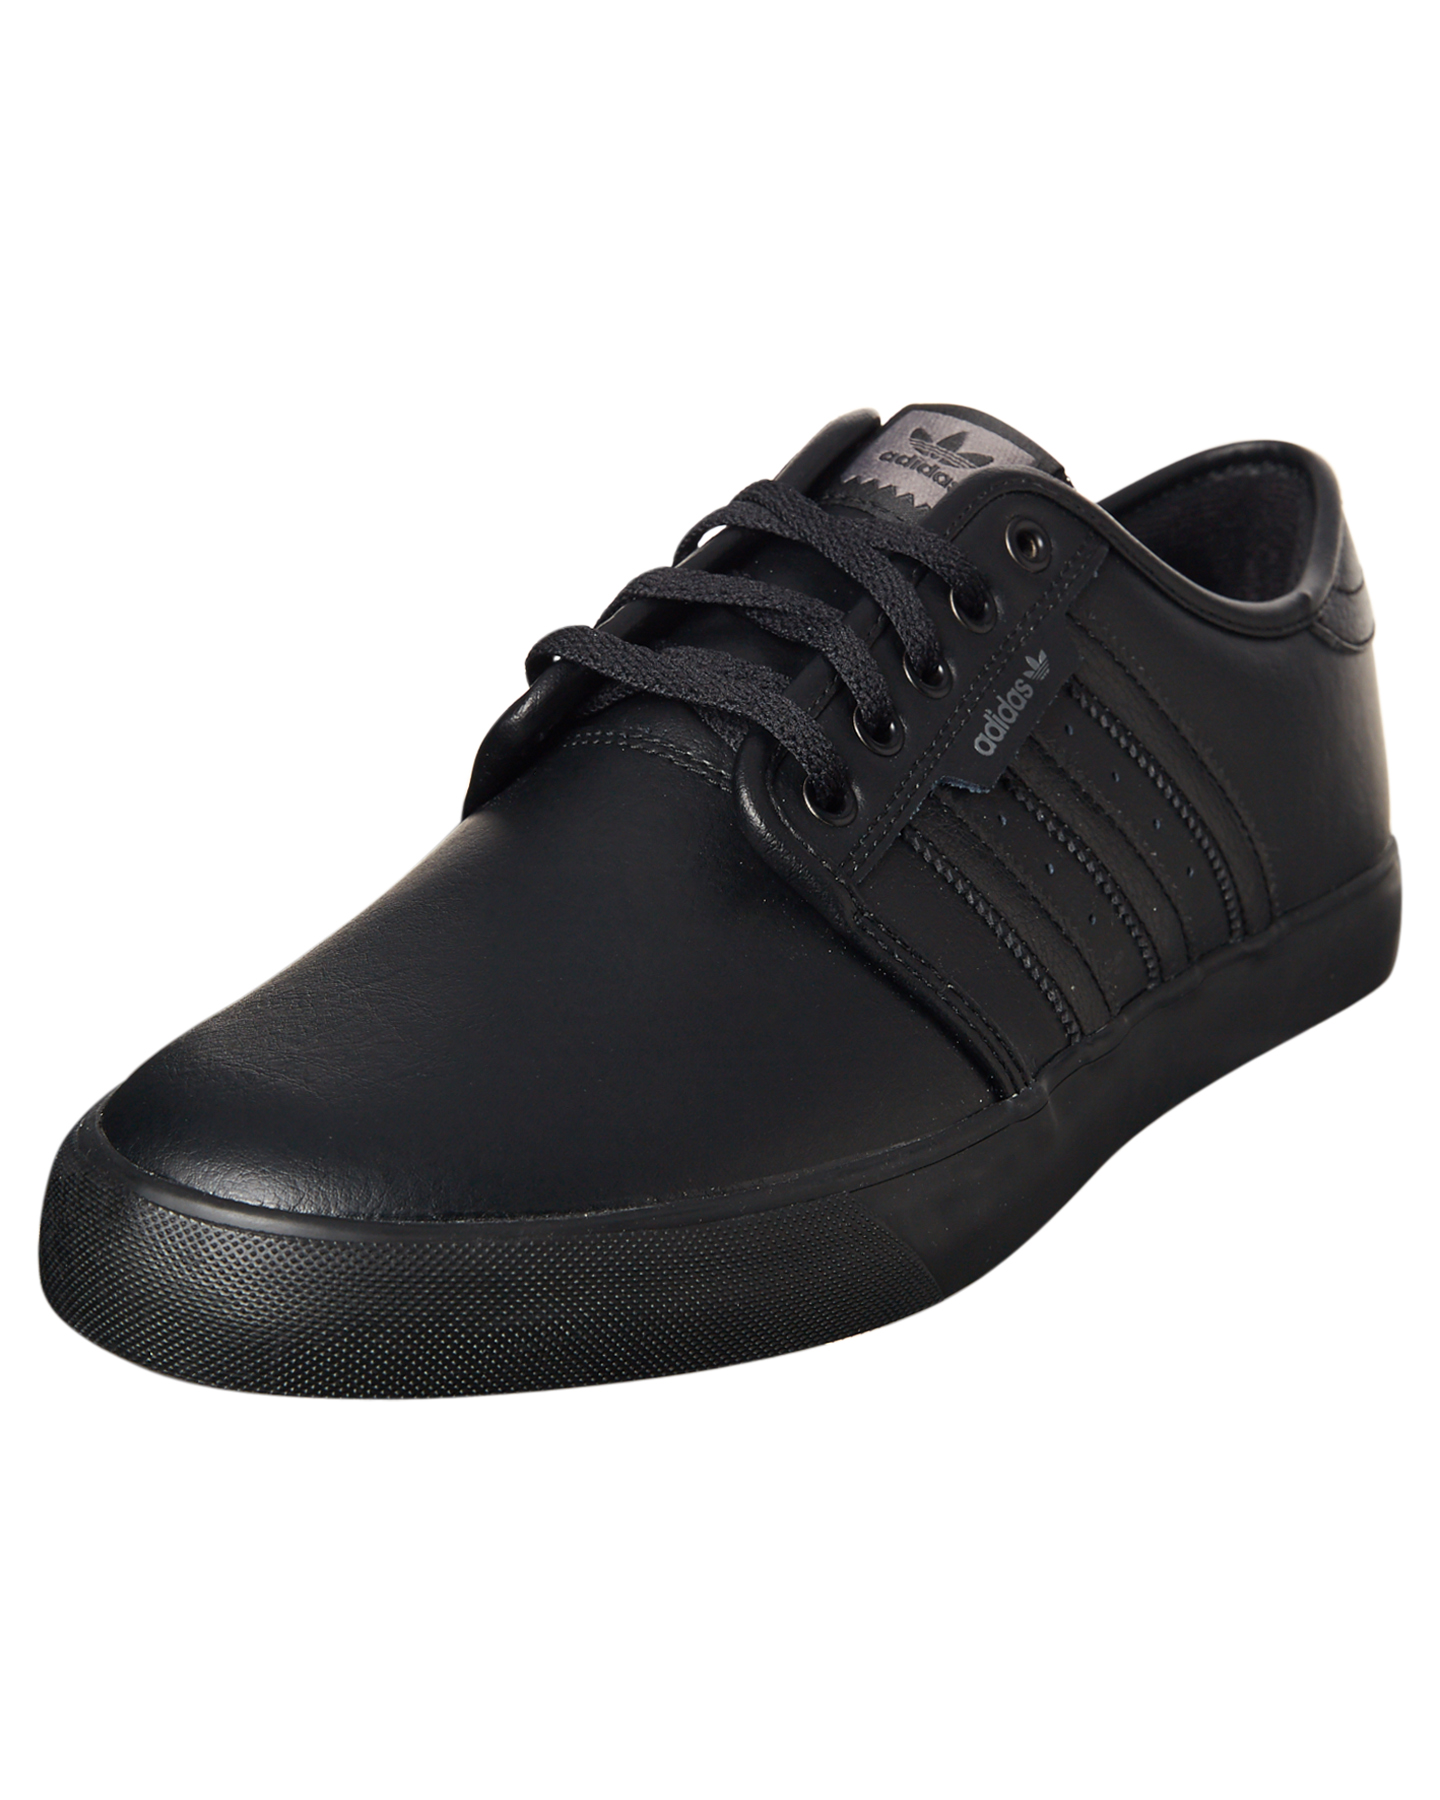 Adidas Mens Seeley Leather Bts Shoe - Black Black | SurfStitch